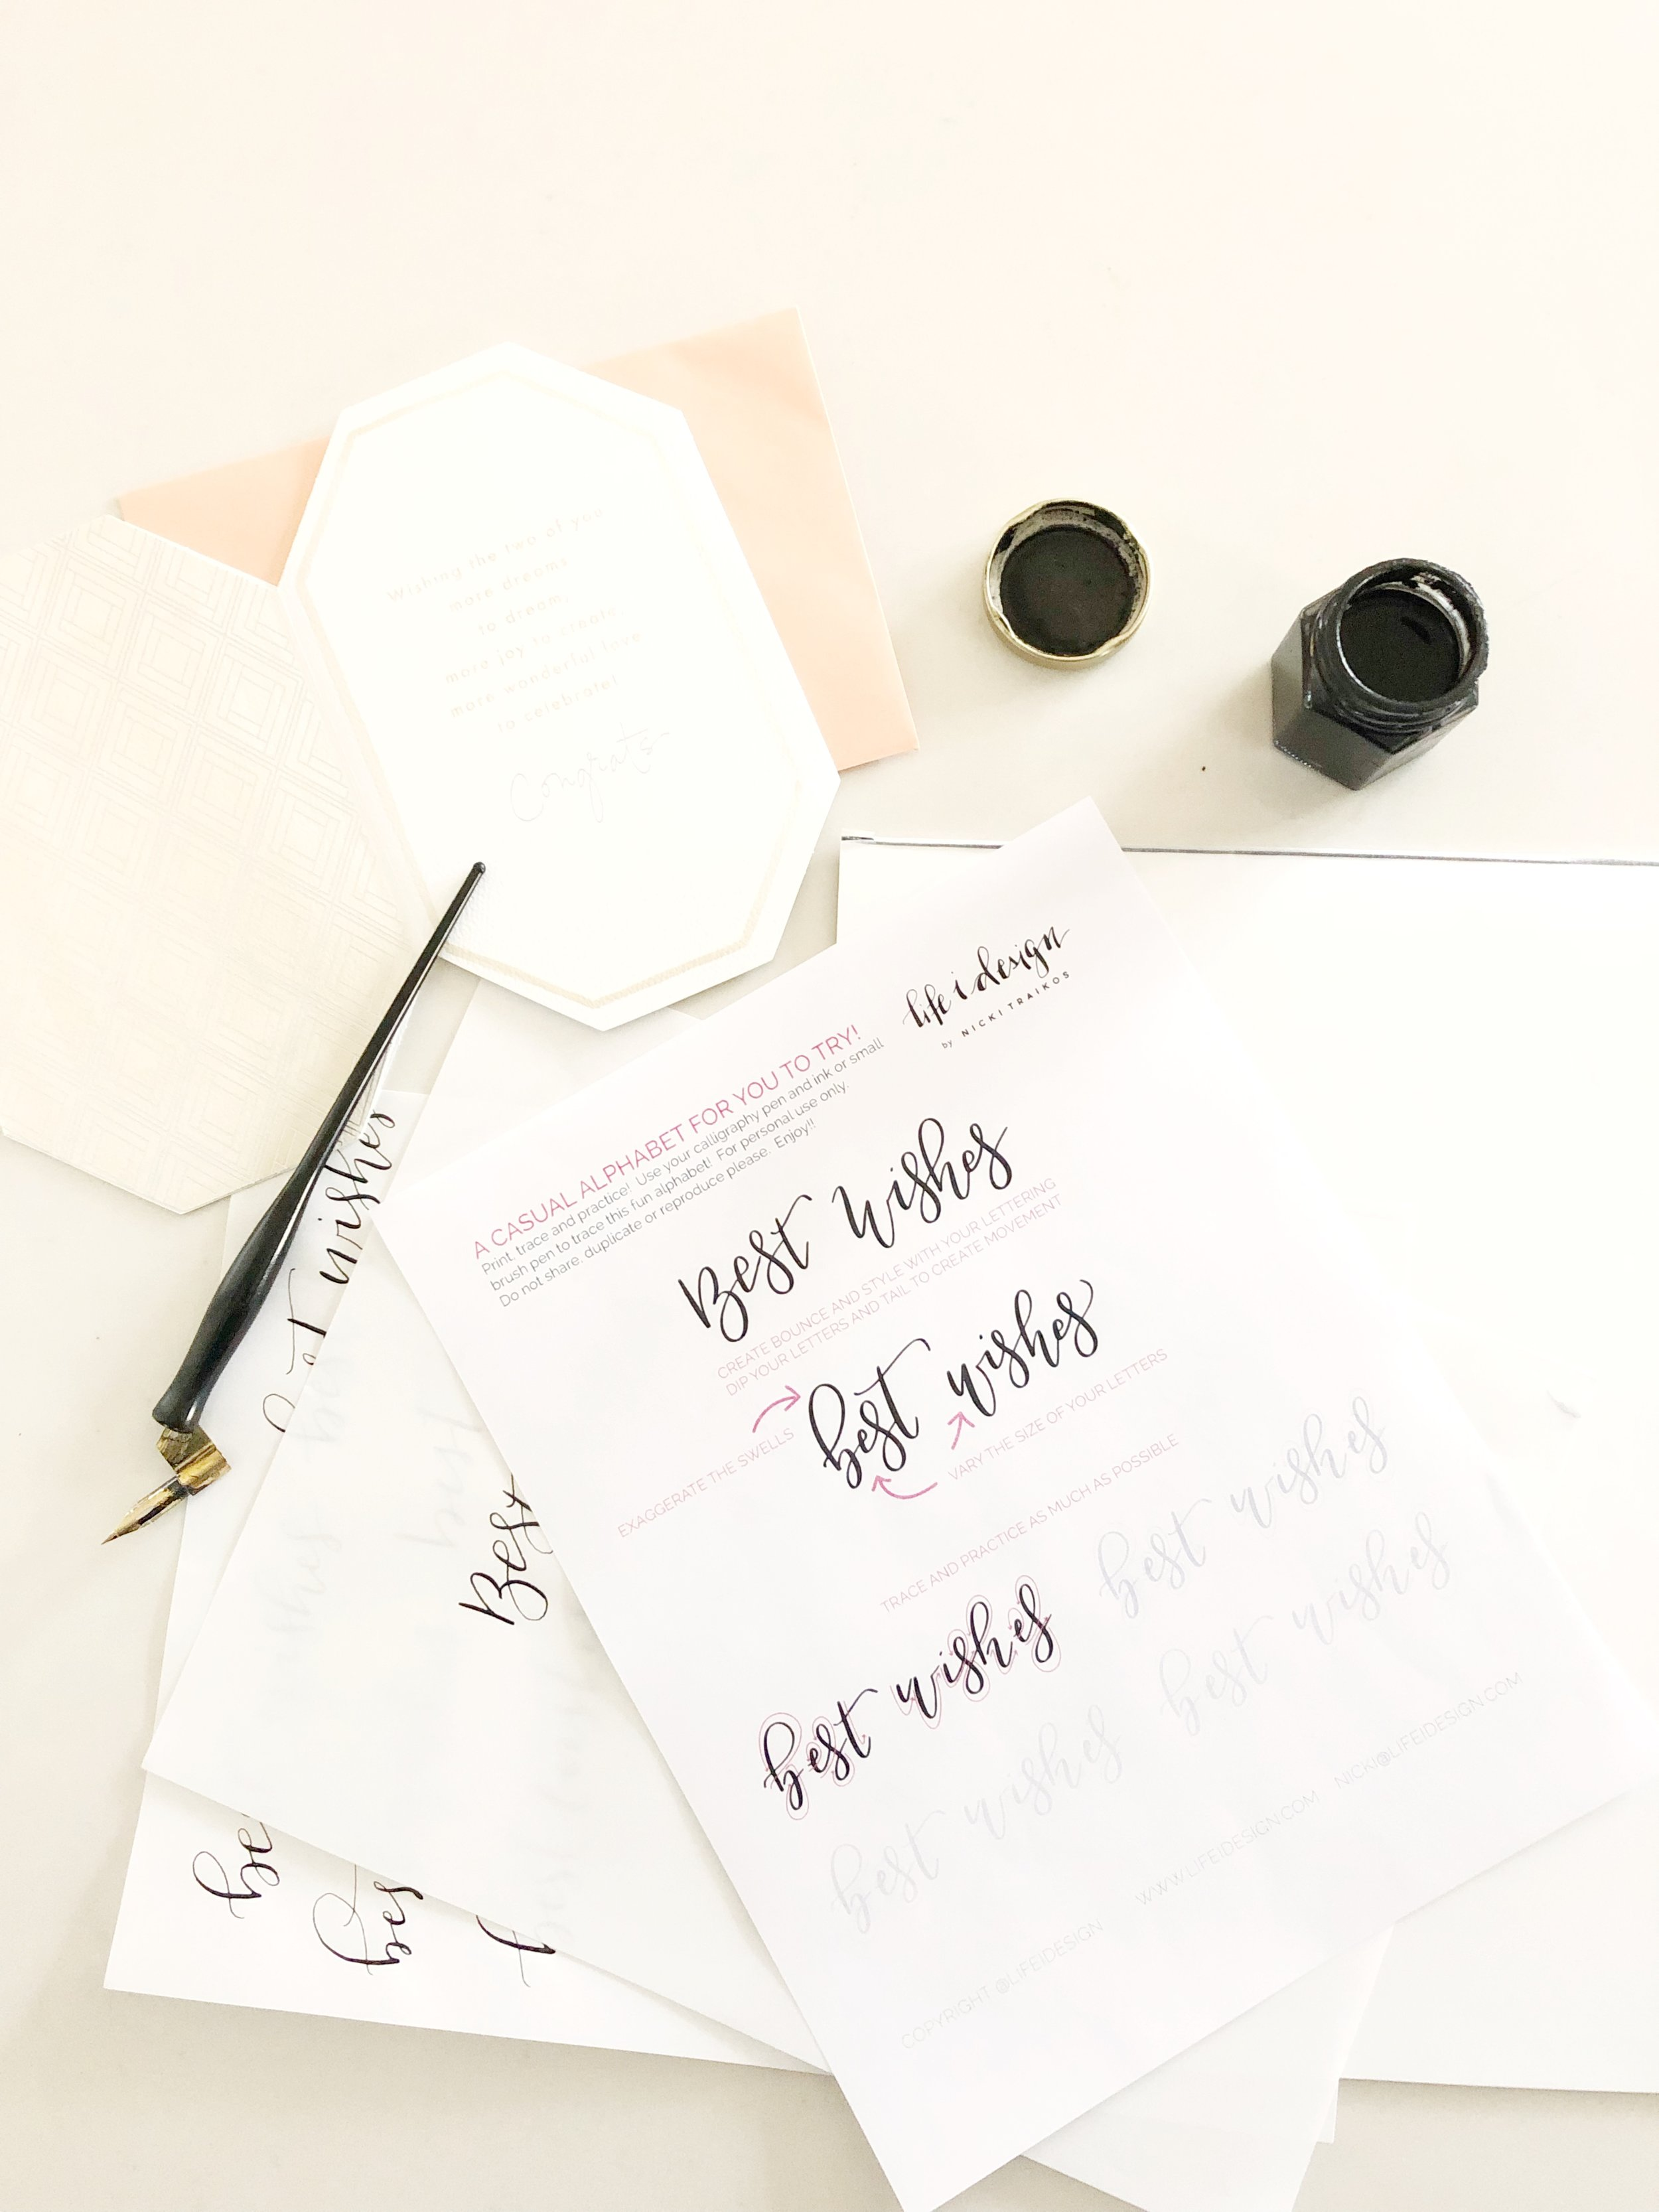 Download, print and practice calligraphy using a small brush pen or dip pen and ink!